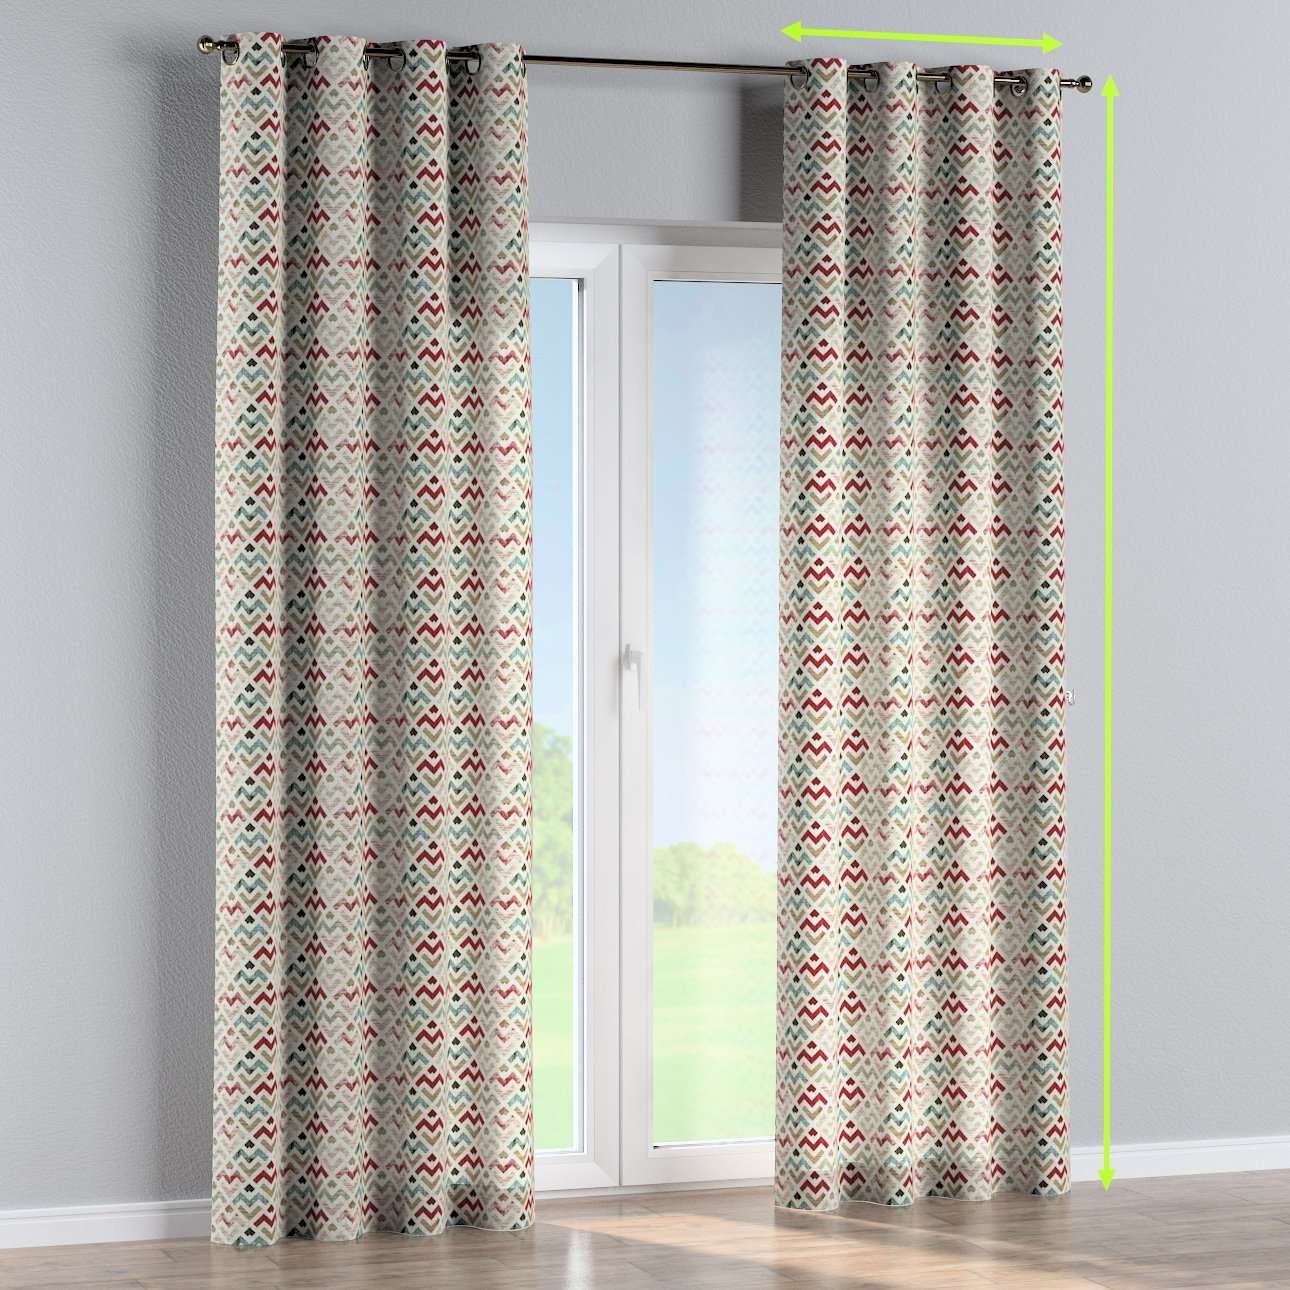 Eyelet curtains in collection Modern, fabric: 141-94